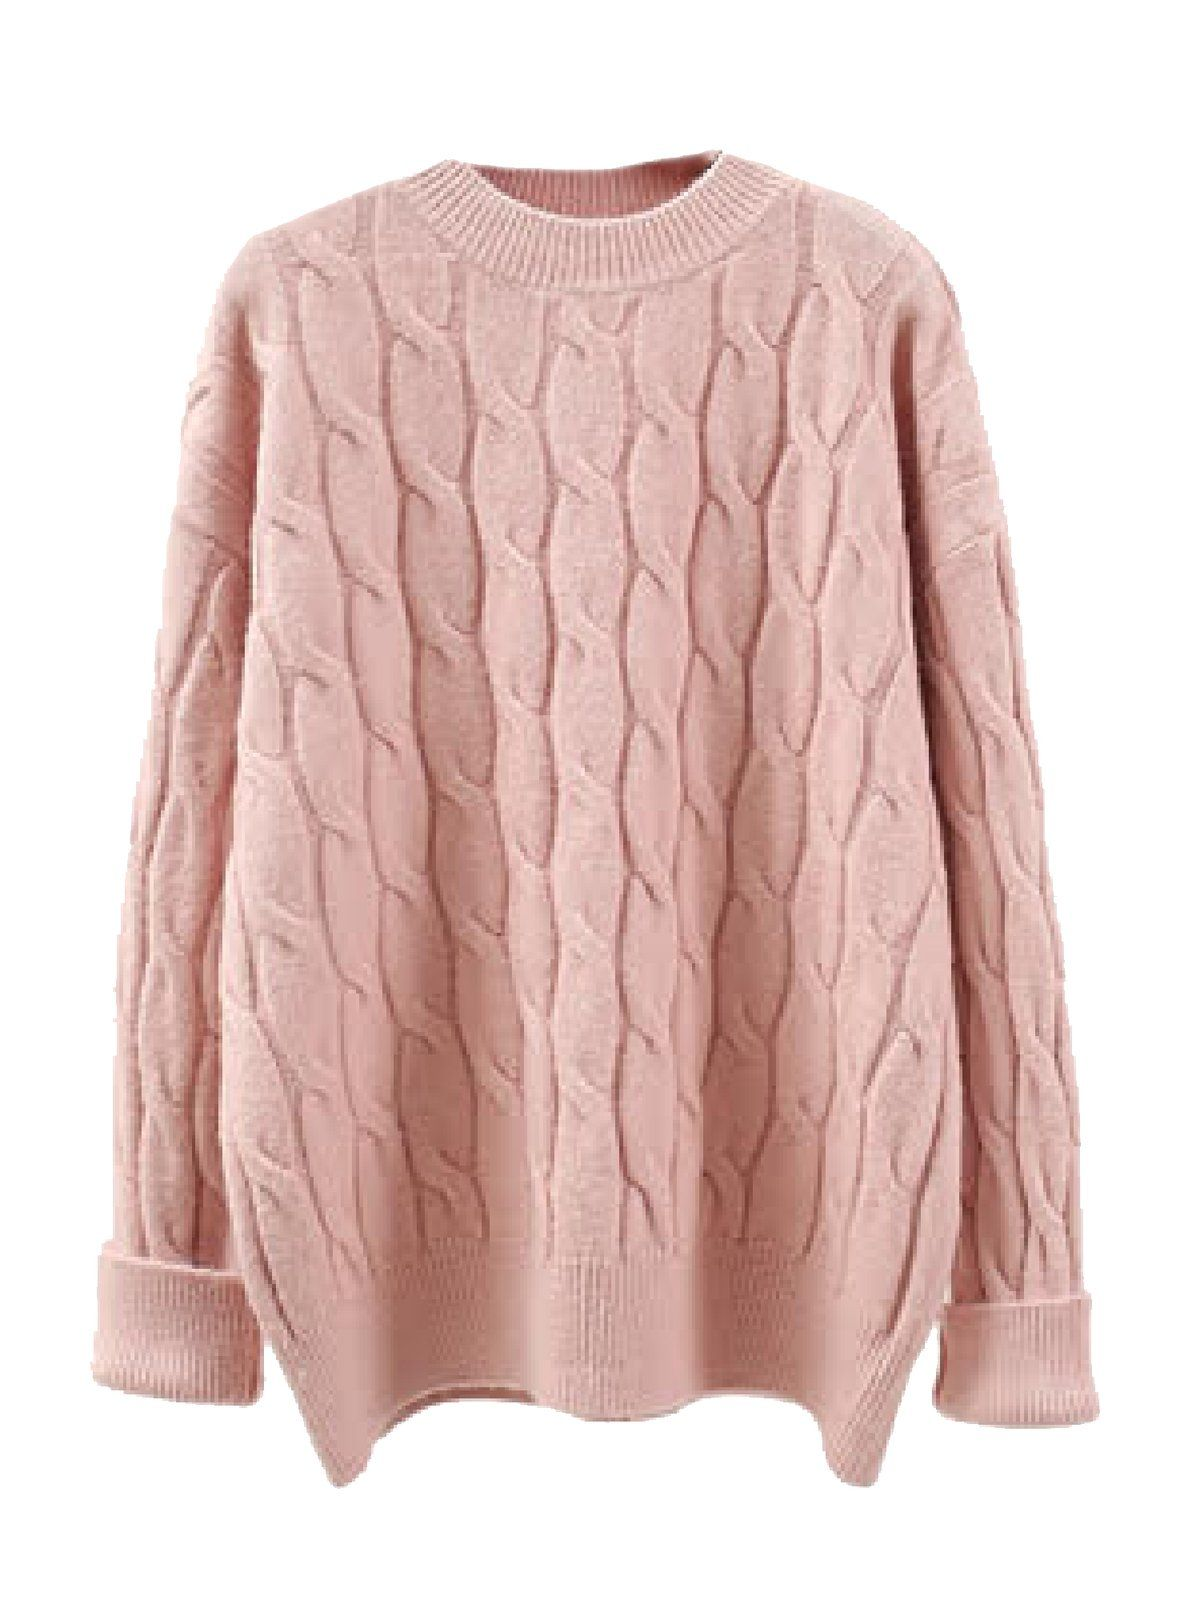 bde1b9baa78f08 Edie' Cable Knit Crewneck Sweater (4 Colors in 2019   Fashion ...